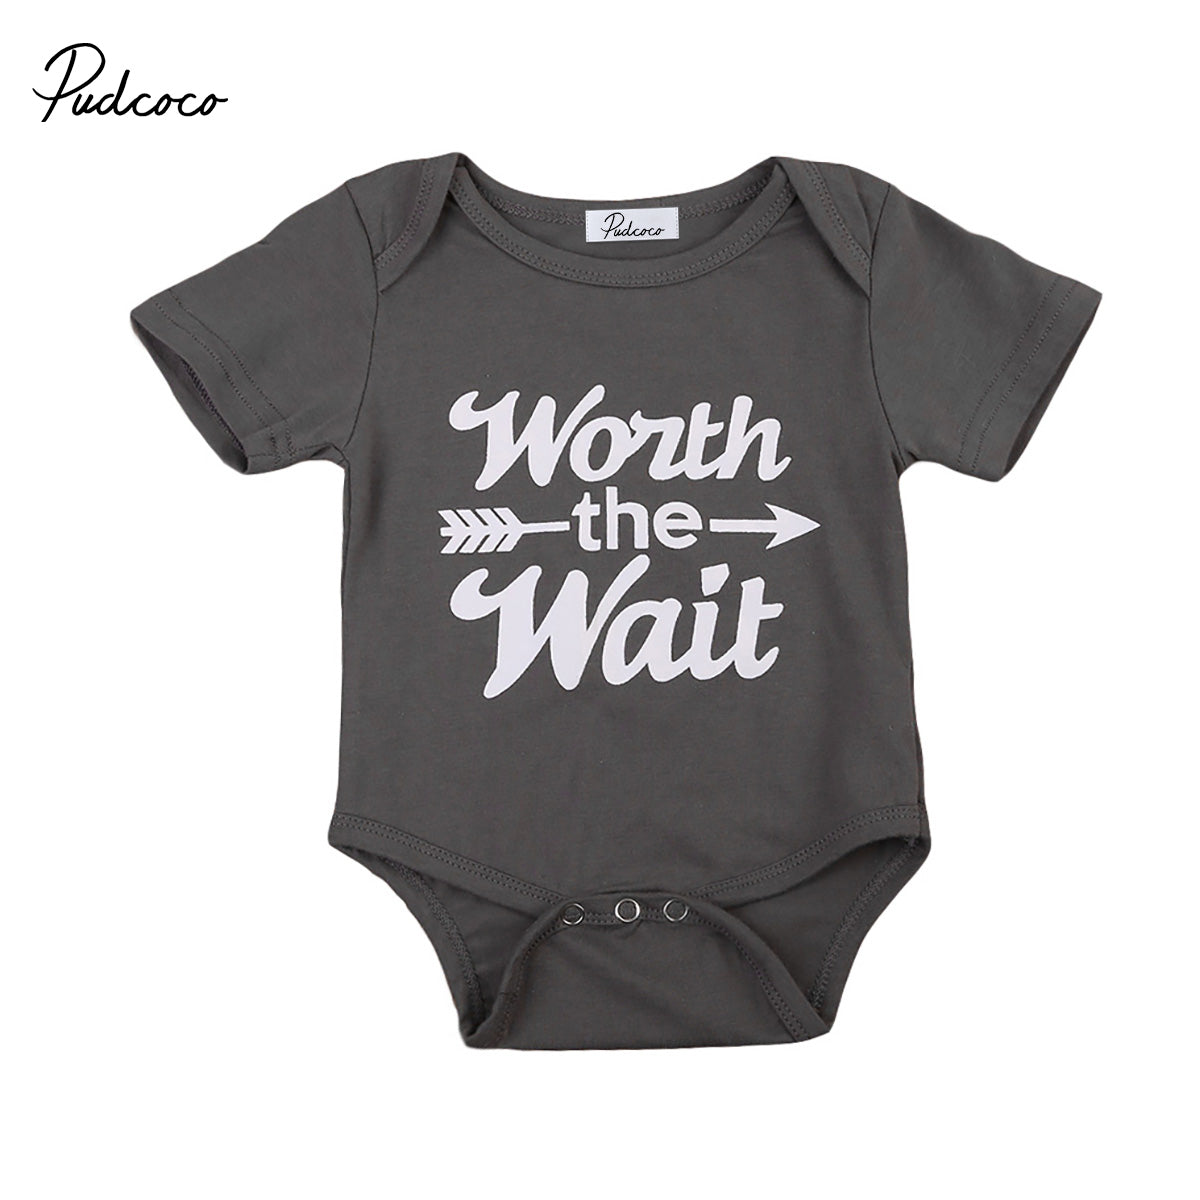 'Worth the Wait' Baby Onesie